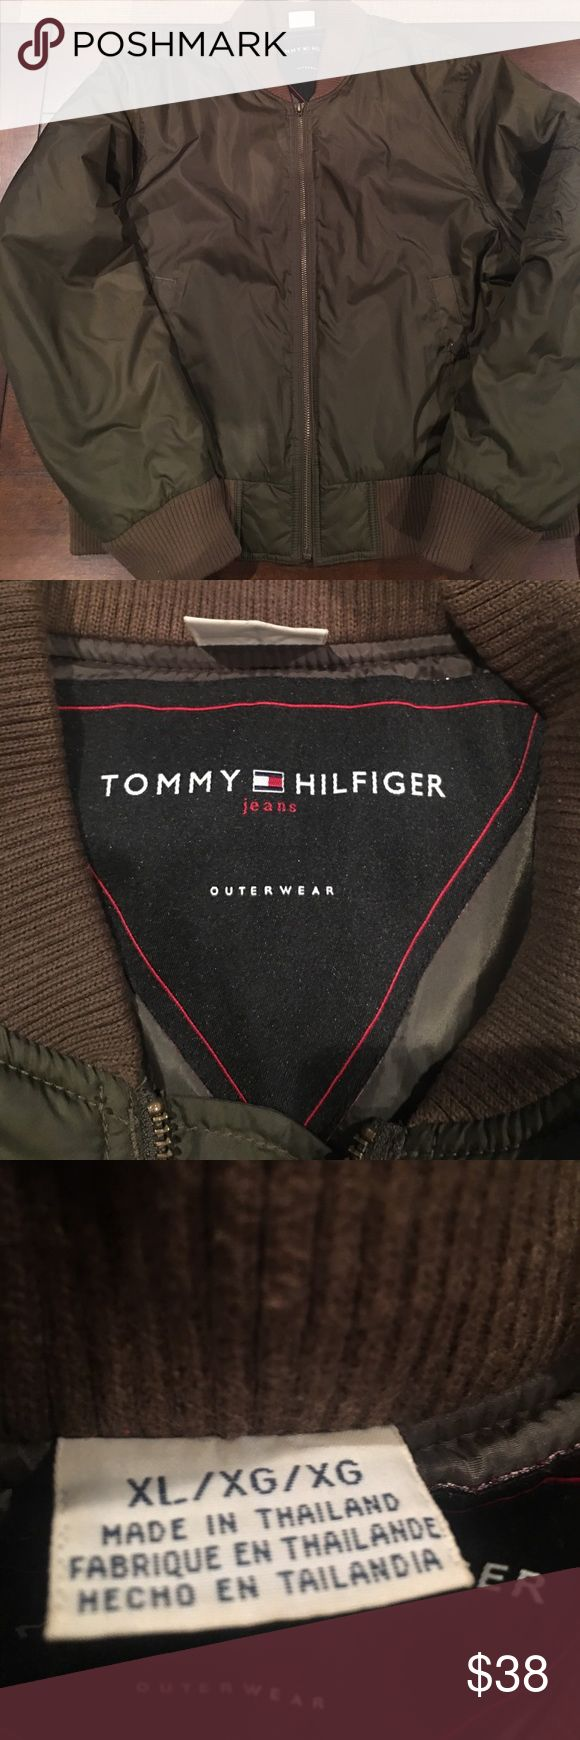 Tommy Hilfiger bomber jacket Tommy Hilfiger olive green bomber jacket. Only flaw is the zipper tag is missing, otherwise excellent condition. Tommy Hilfiger Jackets & Coats Puffers